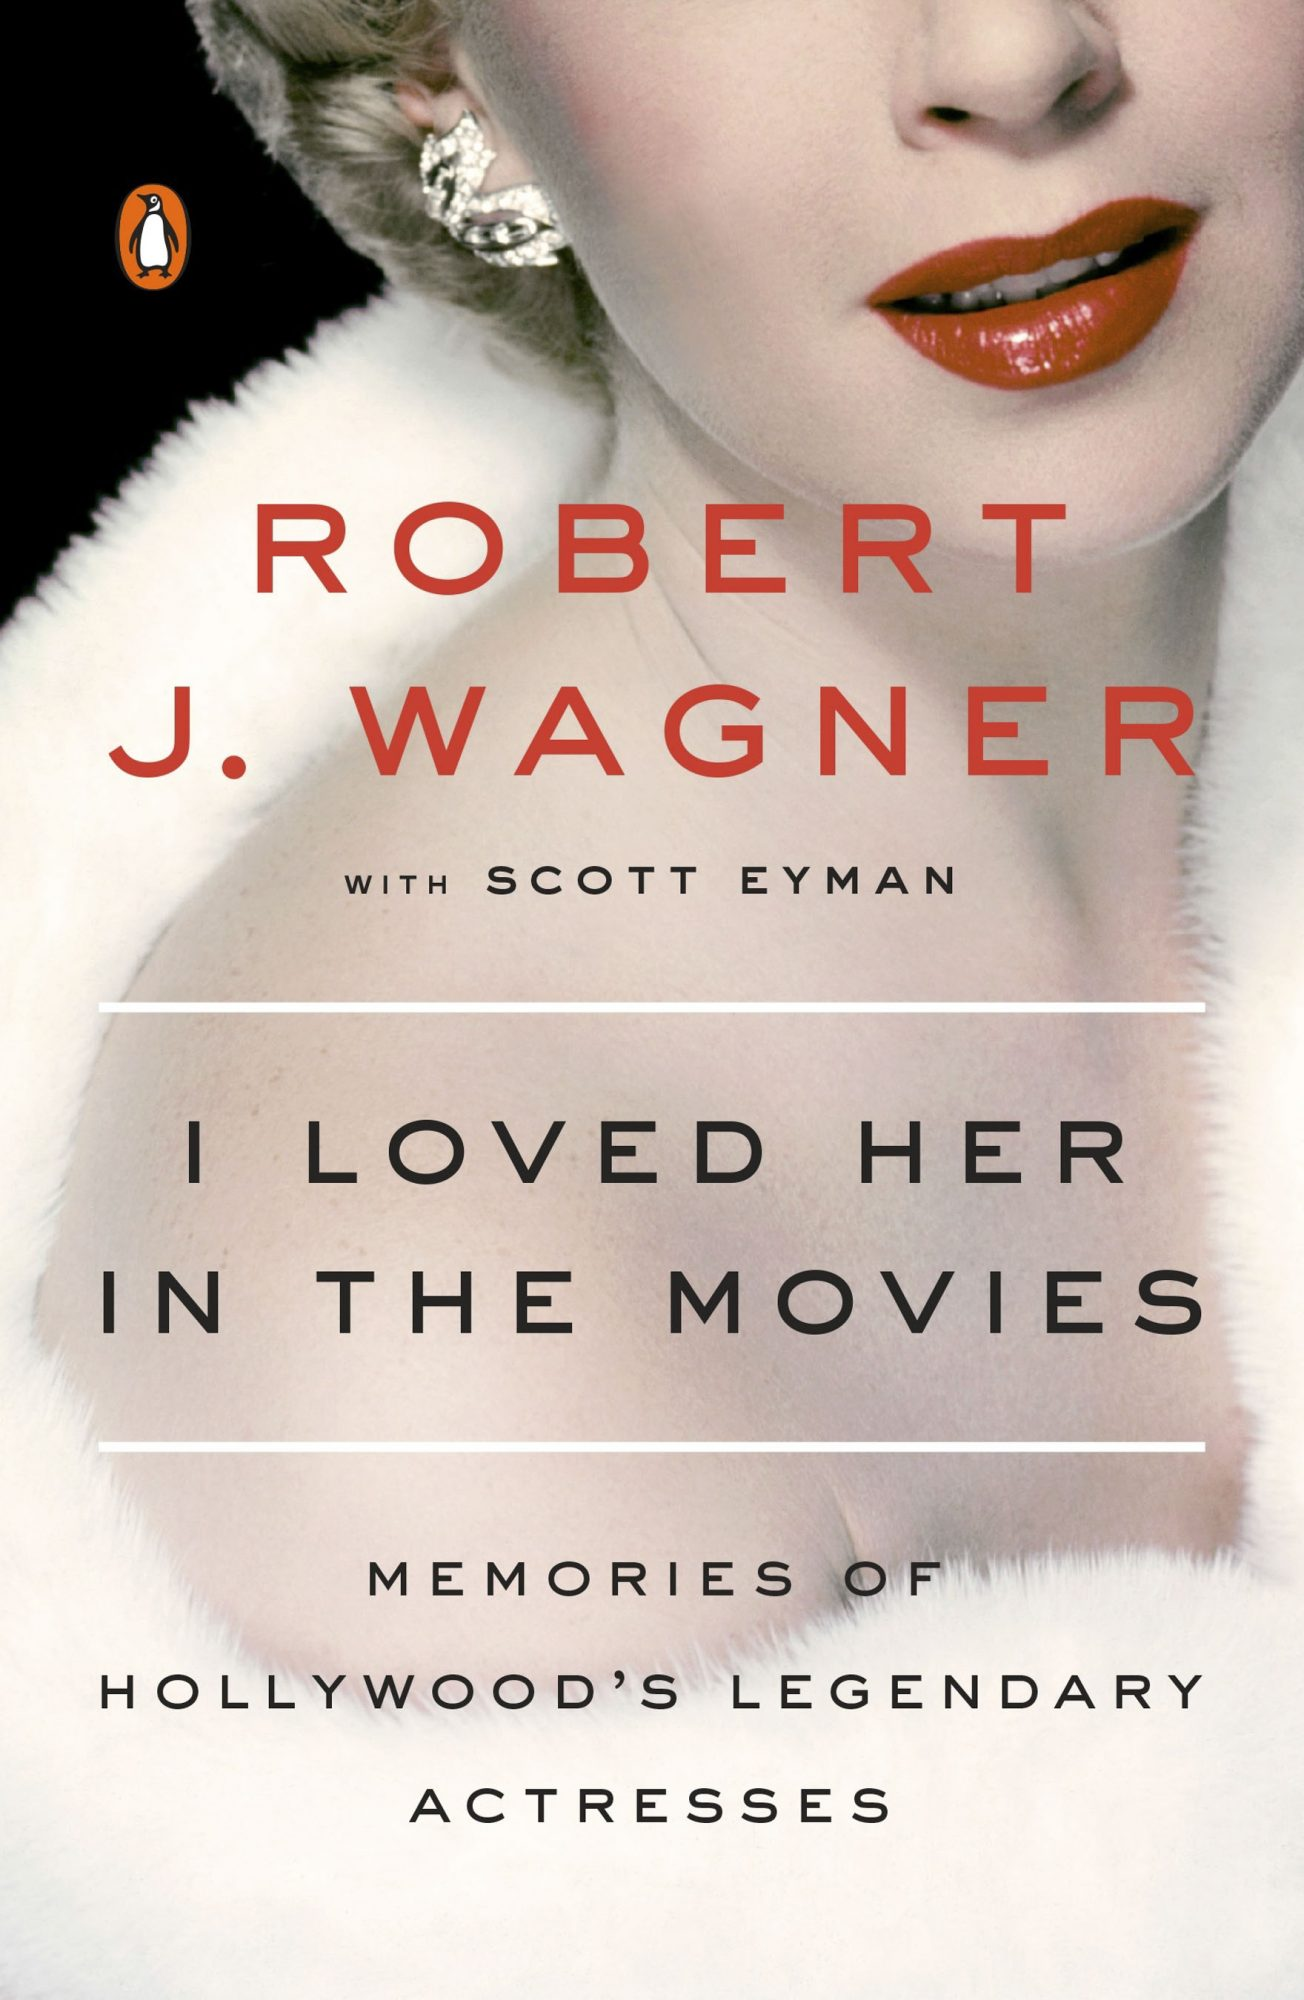 I Loved Her in the Movies: Memories of Hollywood's Legendary Actresses, by Robert Wagner